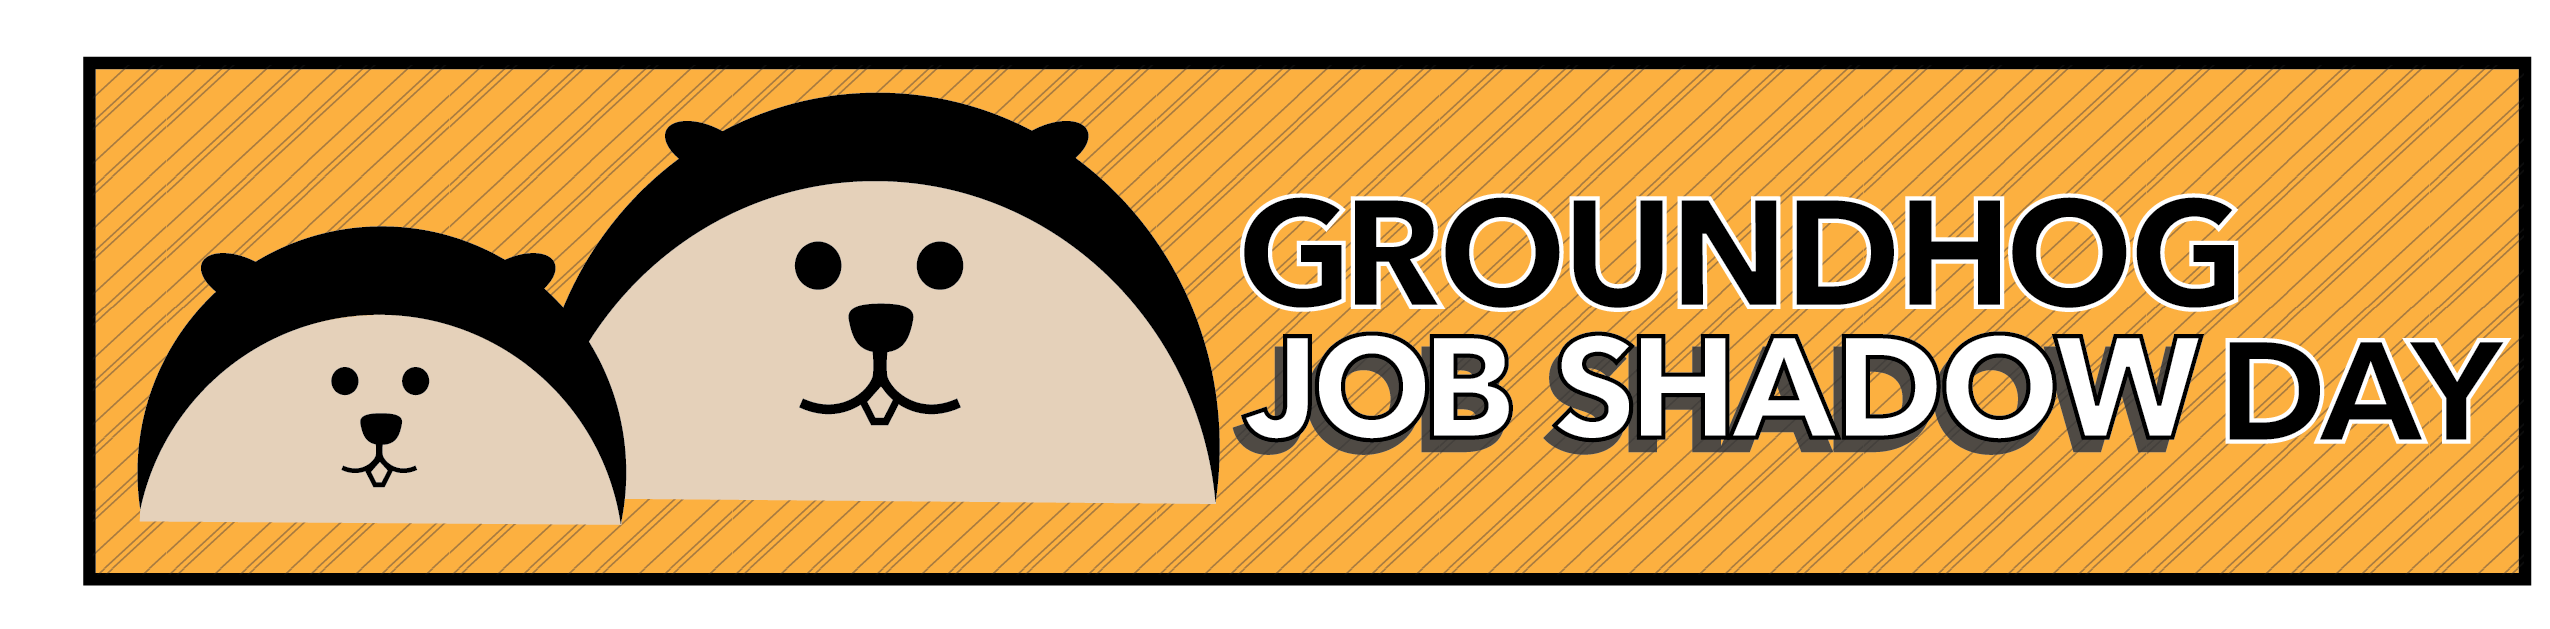 Groundhog clipart shadow. Job day career technical